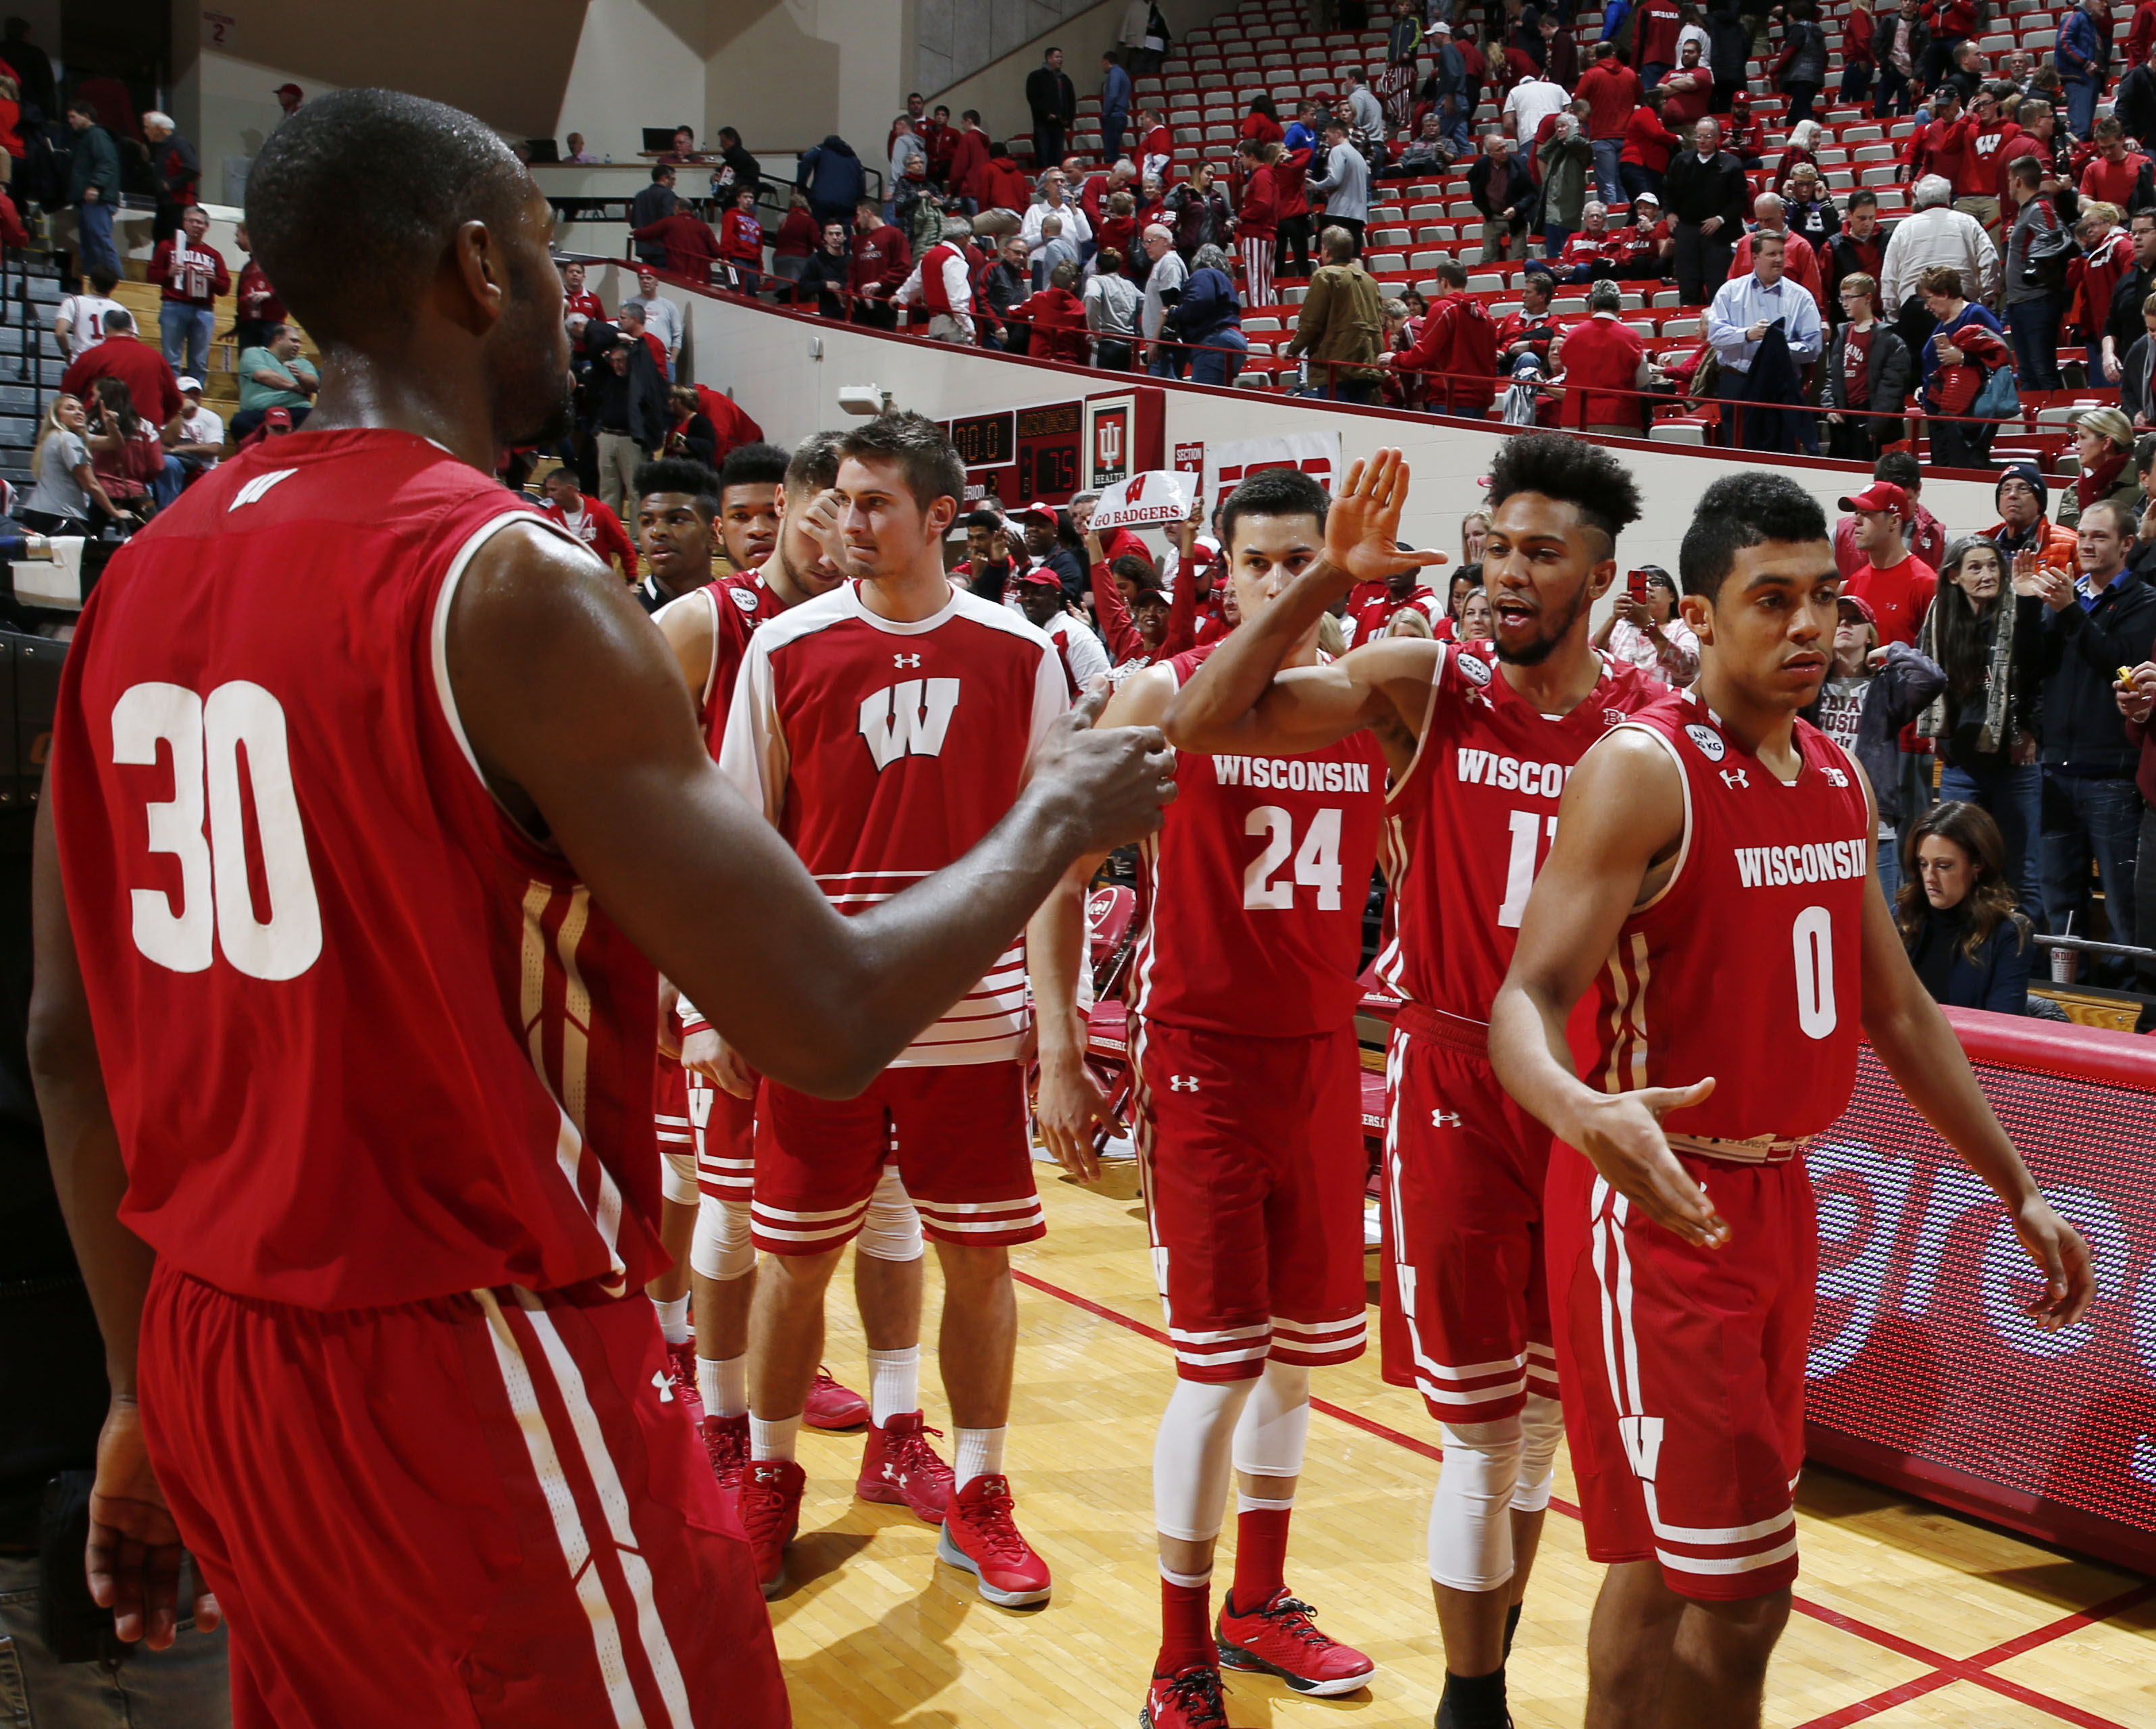 Jan 3, 2017; Bloomington, IN, USA; Wisconsin Badgers reacts after the game to defeating the Indiana Hoosiers at Assembly Hall. Wisconsin defeats Indiana 75-68. Mandatory Credit: Brian Spurlock-USA TODAY Sports